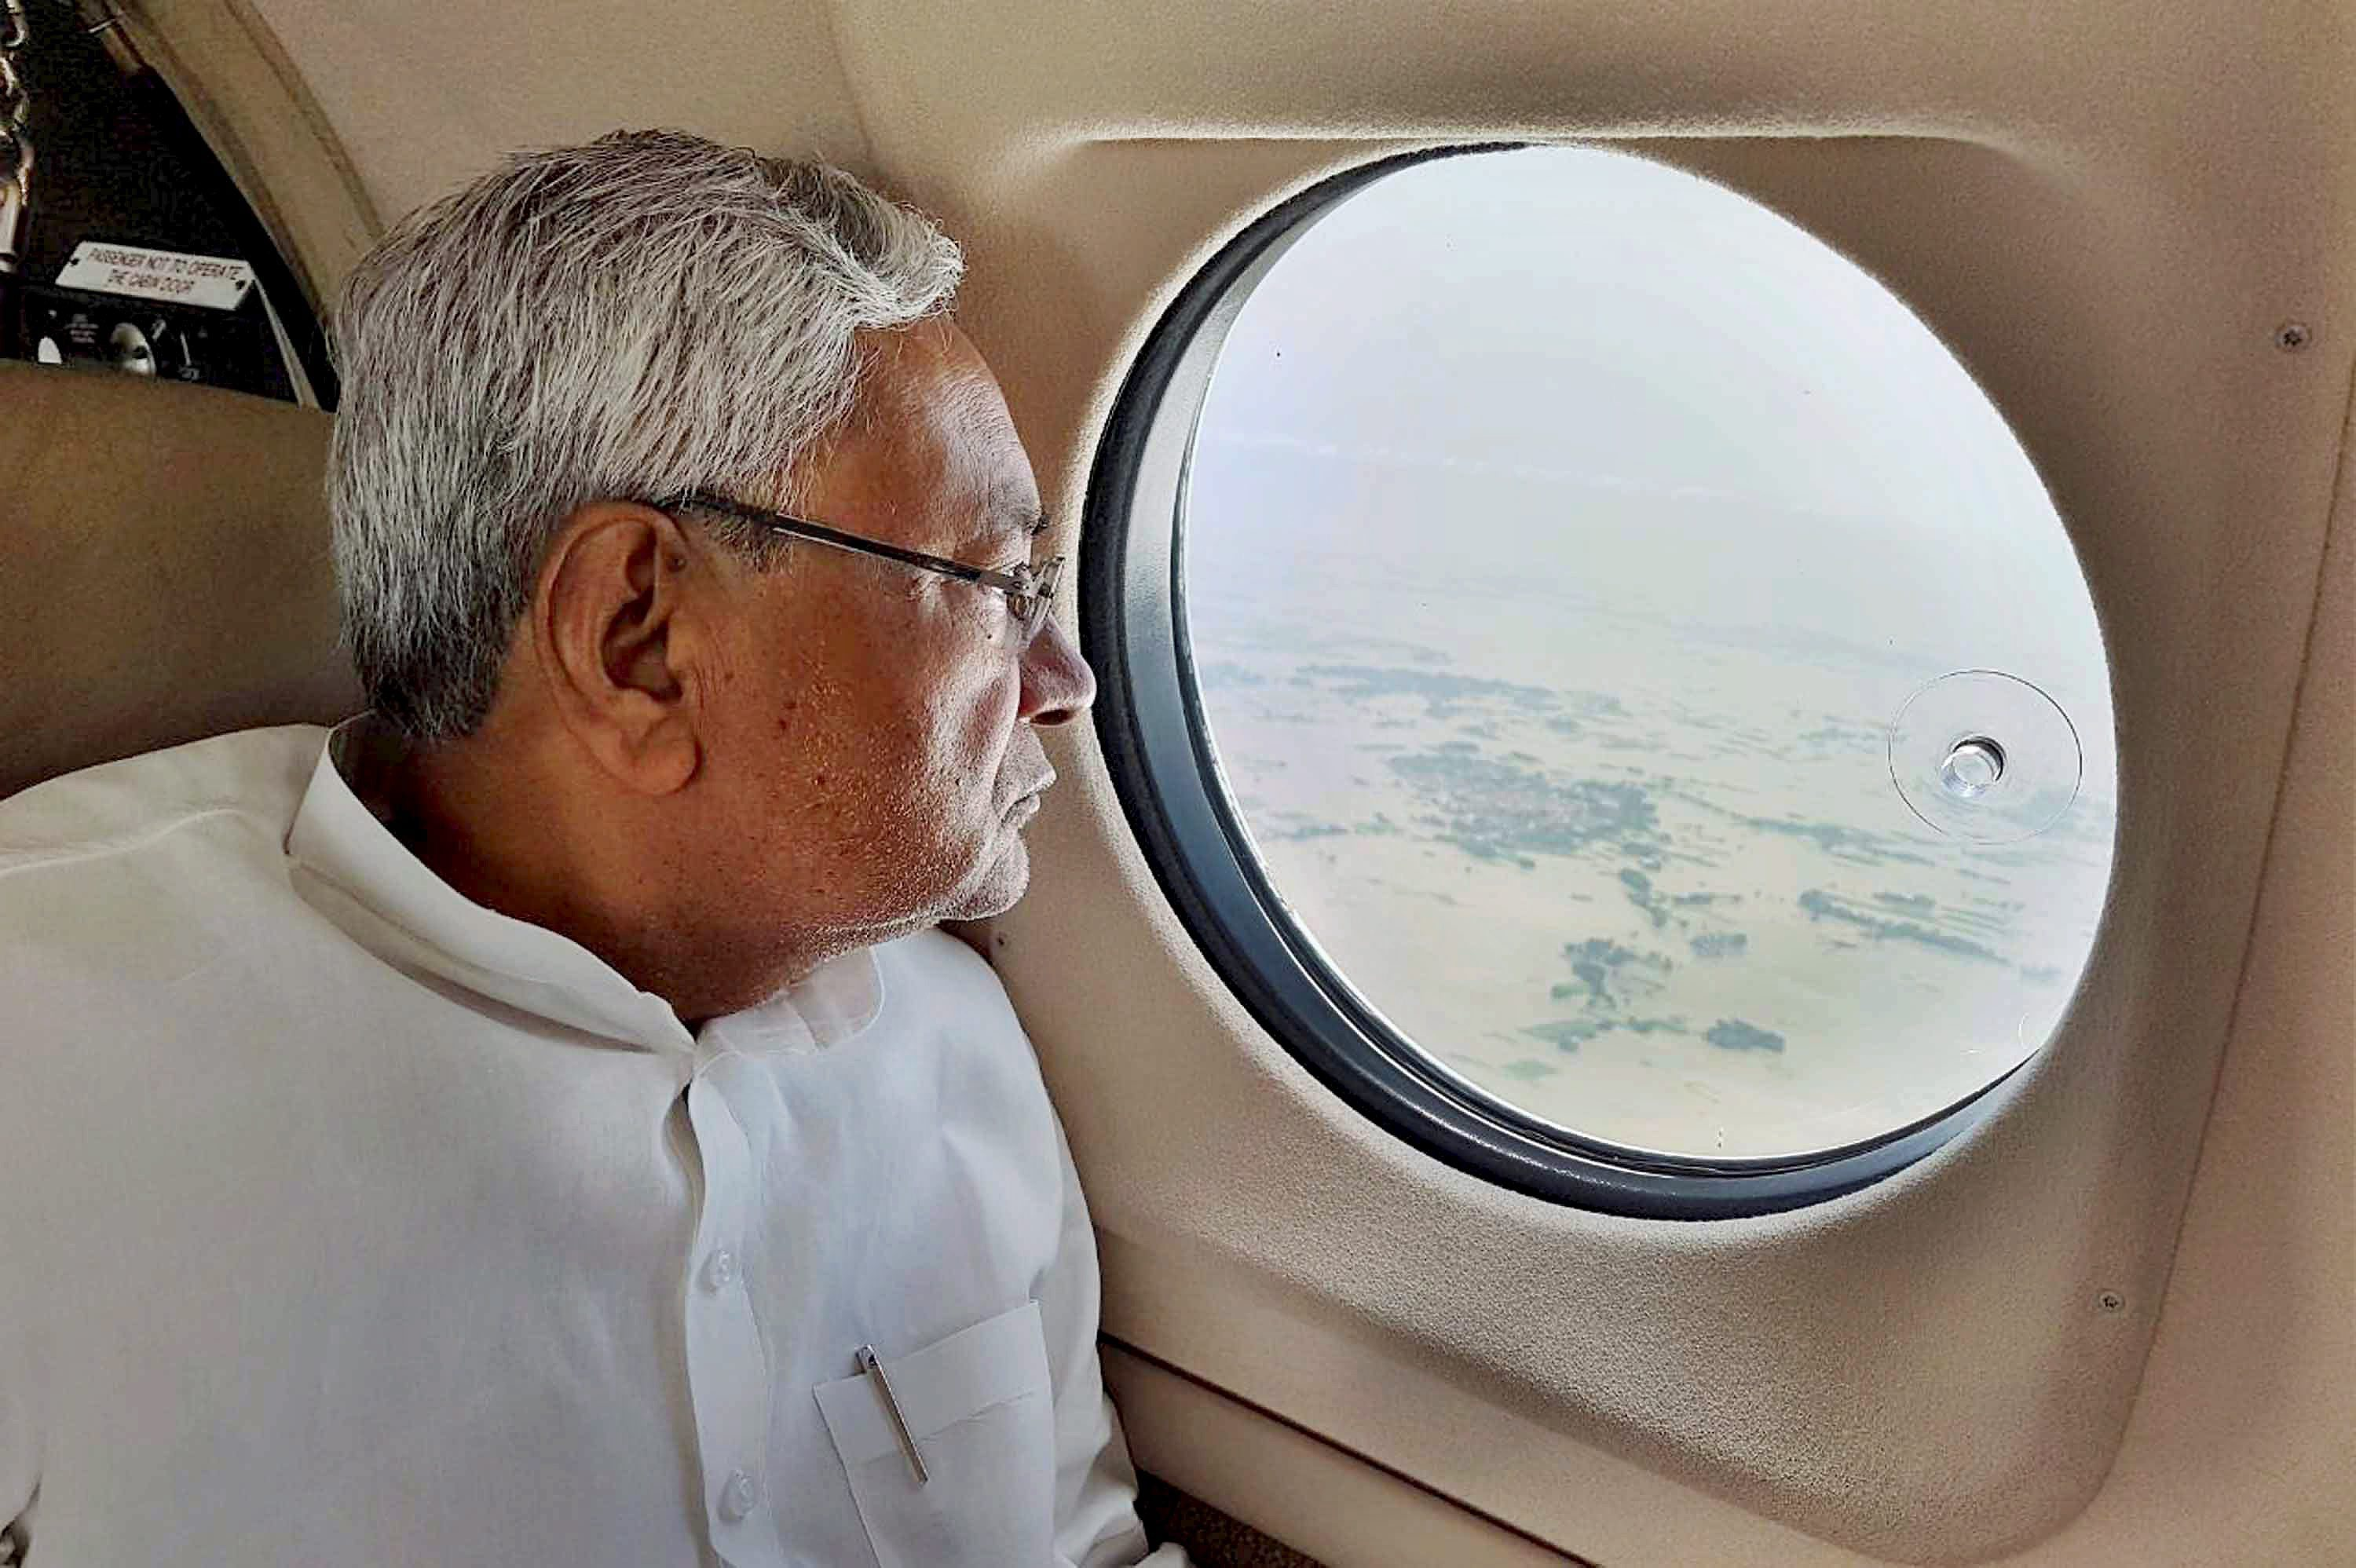 Chief Minister Nitish Kumar takes an aerial survey of flood-affected regions in Bihar. (Credit: PTI)